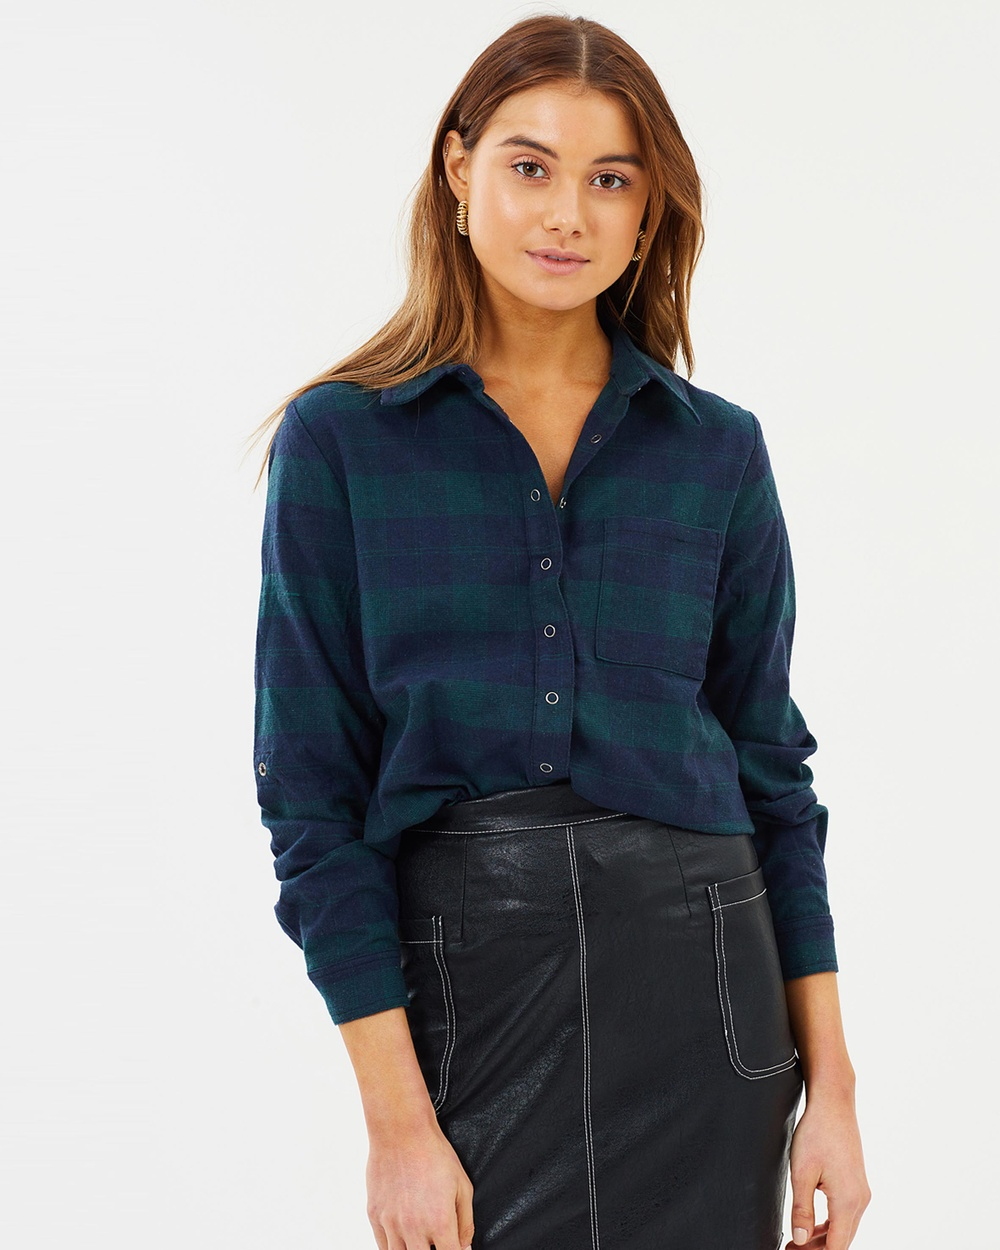 Dazie Aspen Check Shirt Tops Green & Navy Check Aspen Check Shirt